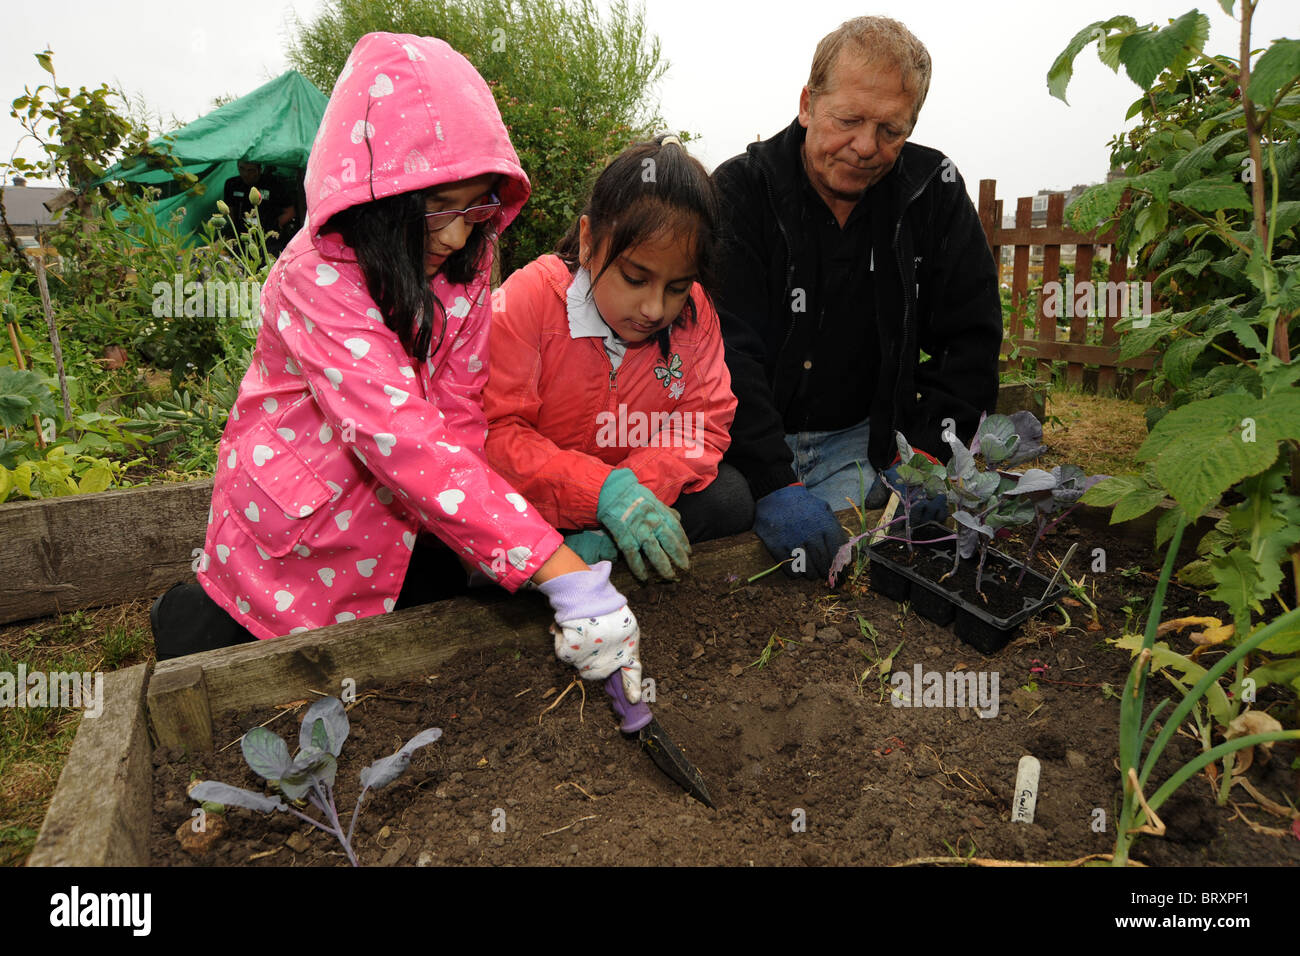 children visit a local inner city allotment to learn about gardening and the environment, Bradford UK - Stock Image